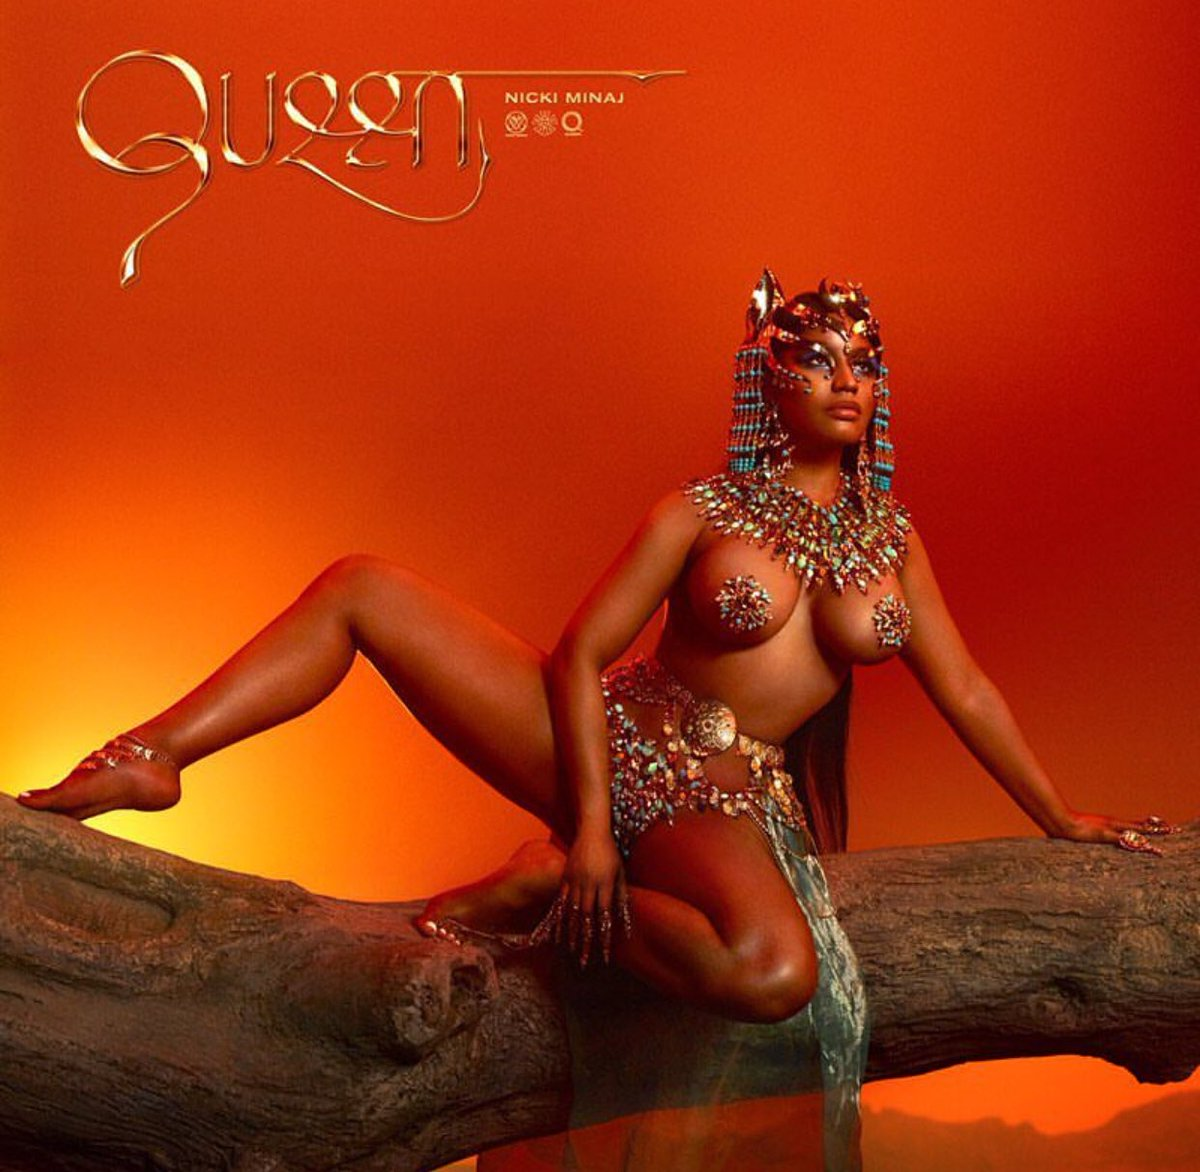 RT @YoungMoneySite: #QUEEN IS OUT ????????  Listen here: https://t.co/21BB2vo4mG https://t.co/3wxfqyospt